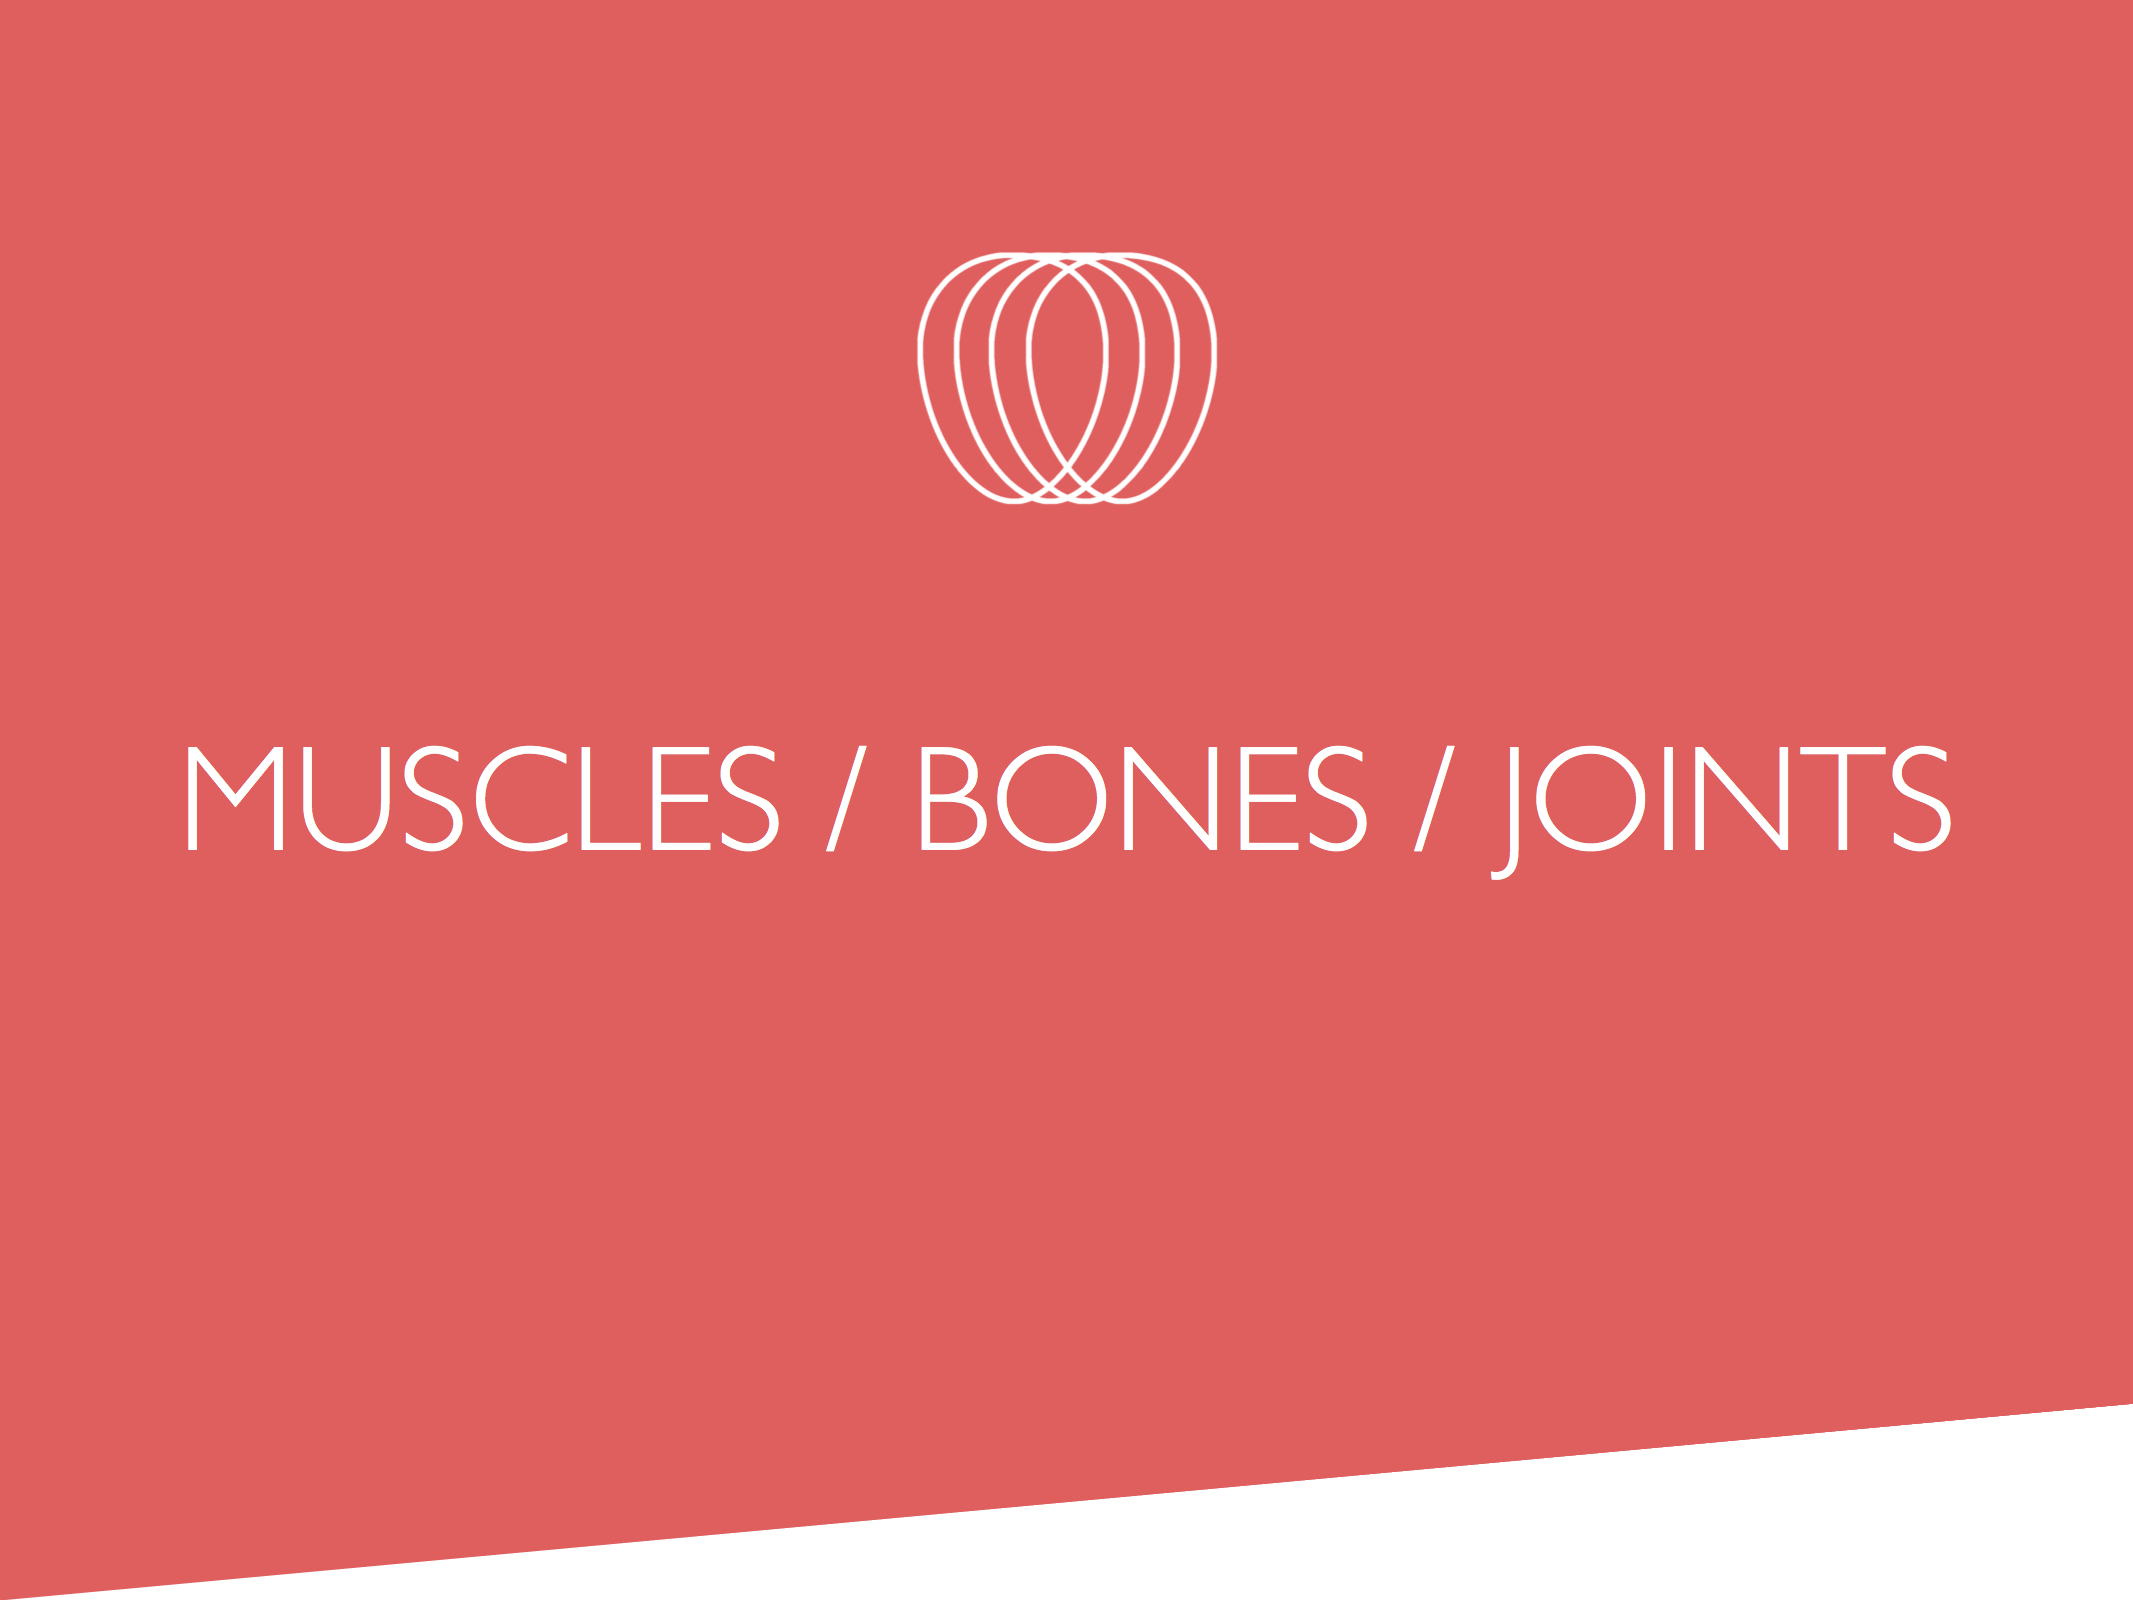 MUSCLES : BONES : JOINTS.jpg